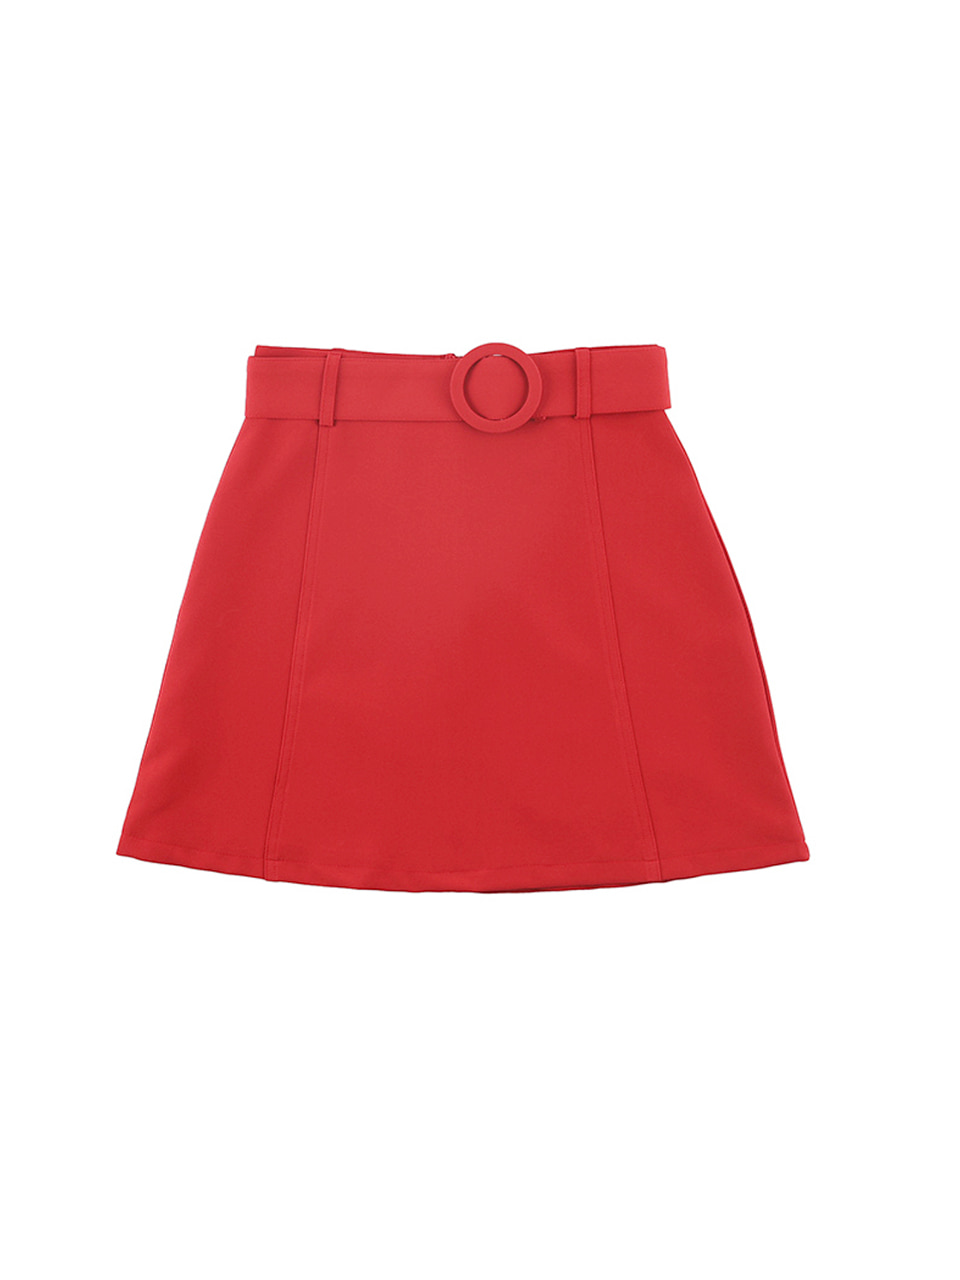 mgmg circle belt skirt_red